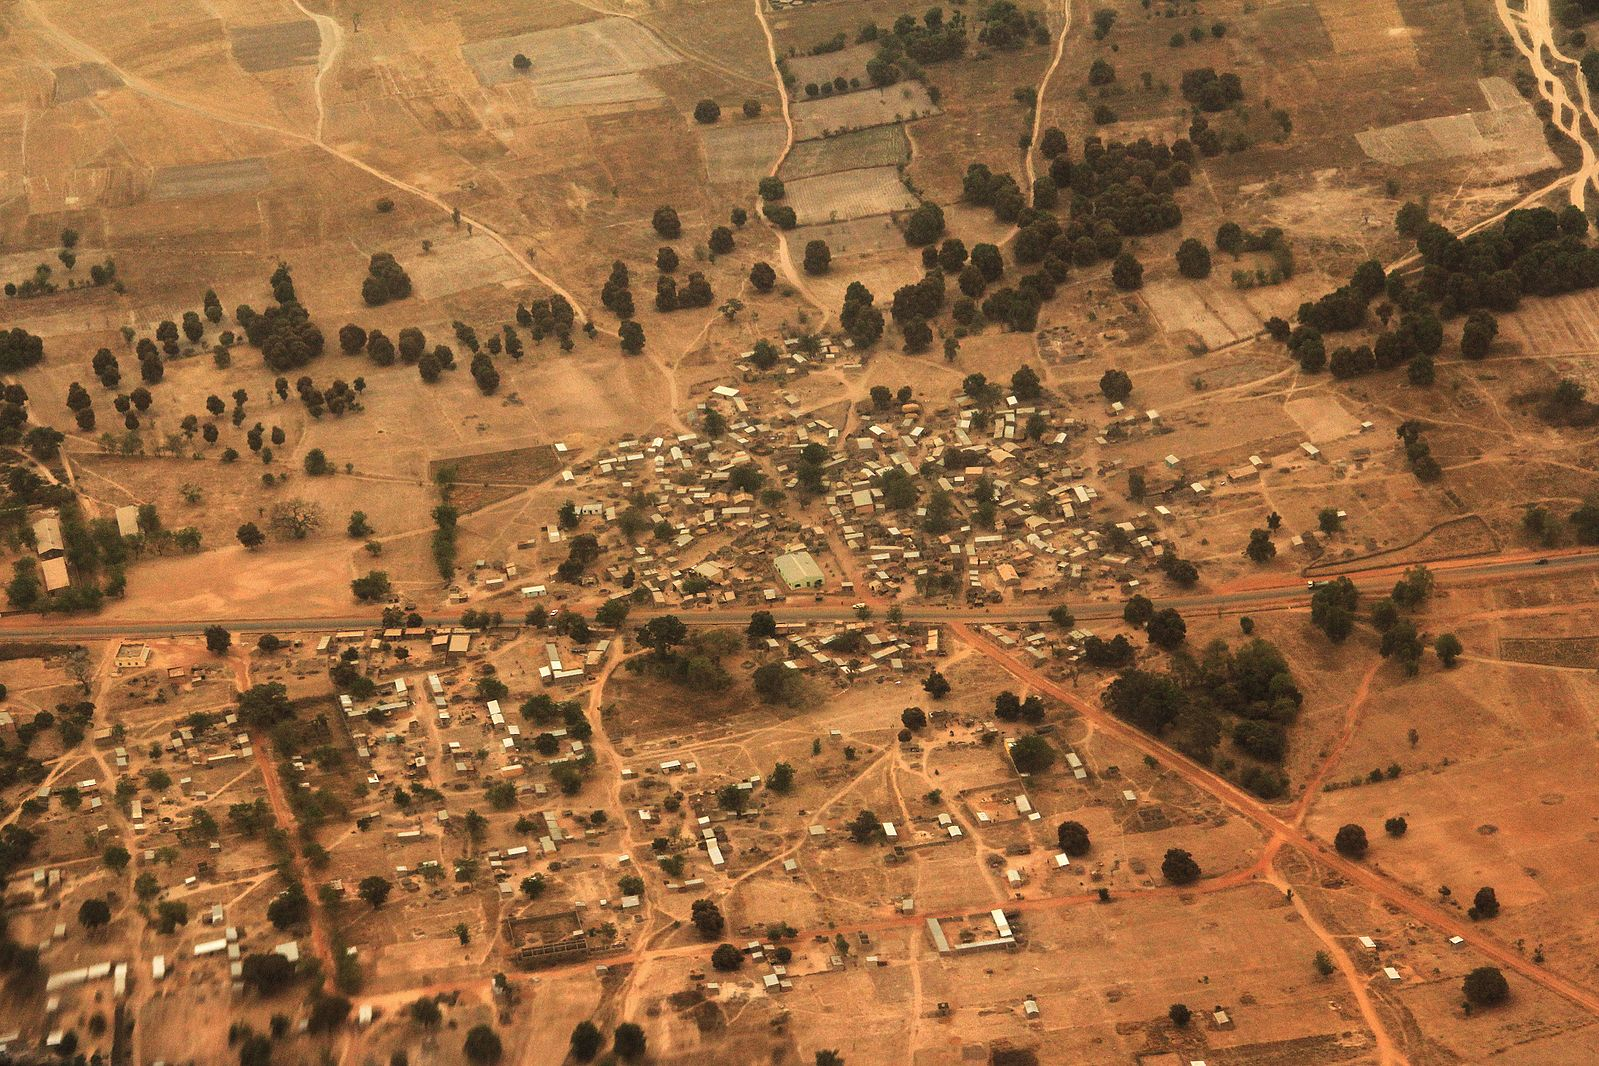 View of Mali taken by US Air Force Supporting French Military, 2013